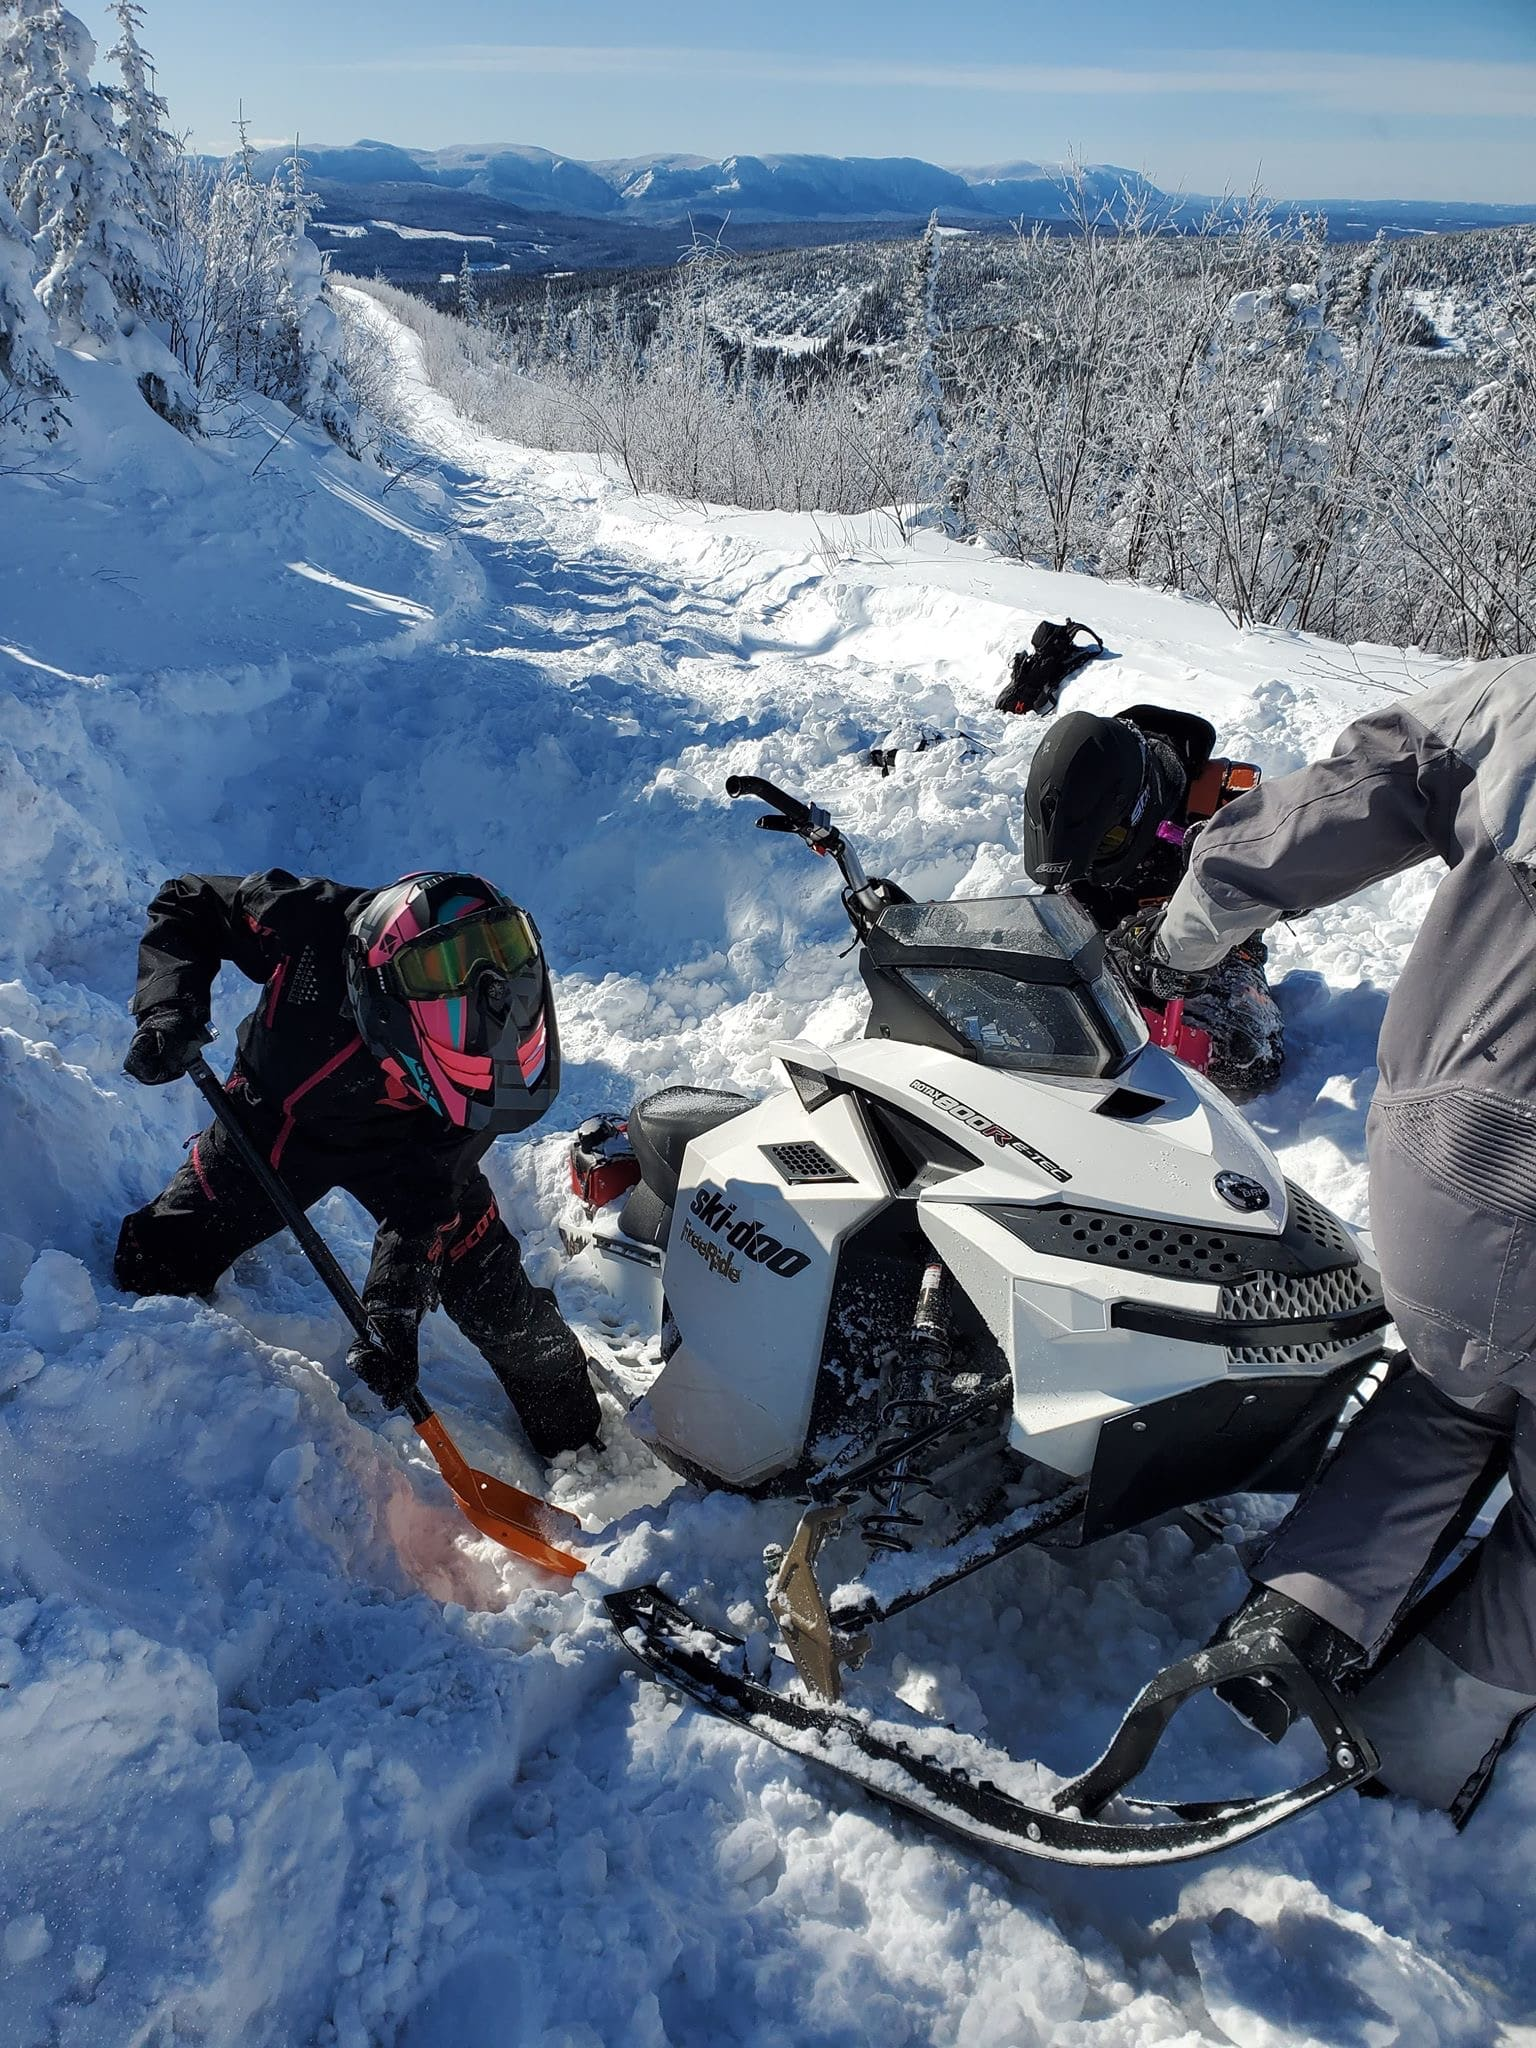 Off-Trail Snowmobiling: Anyone Can Learn How!